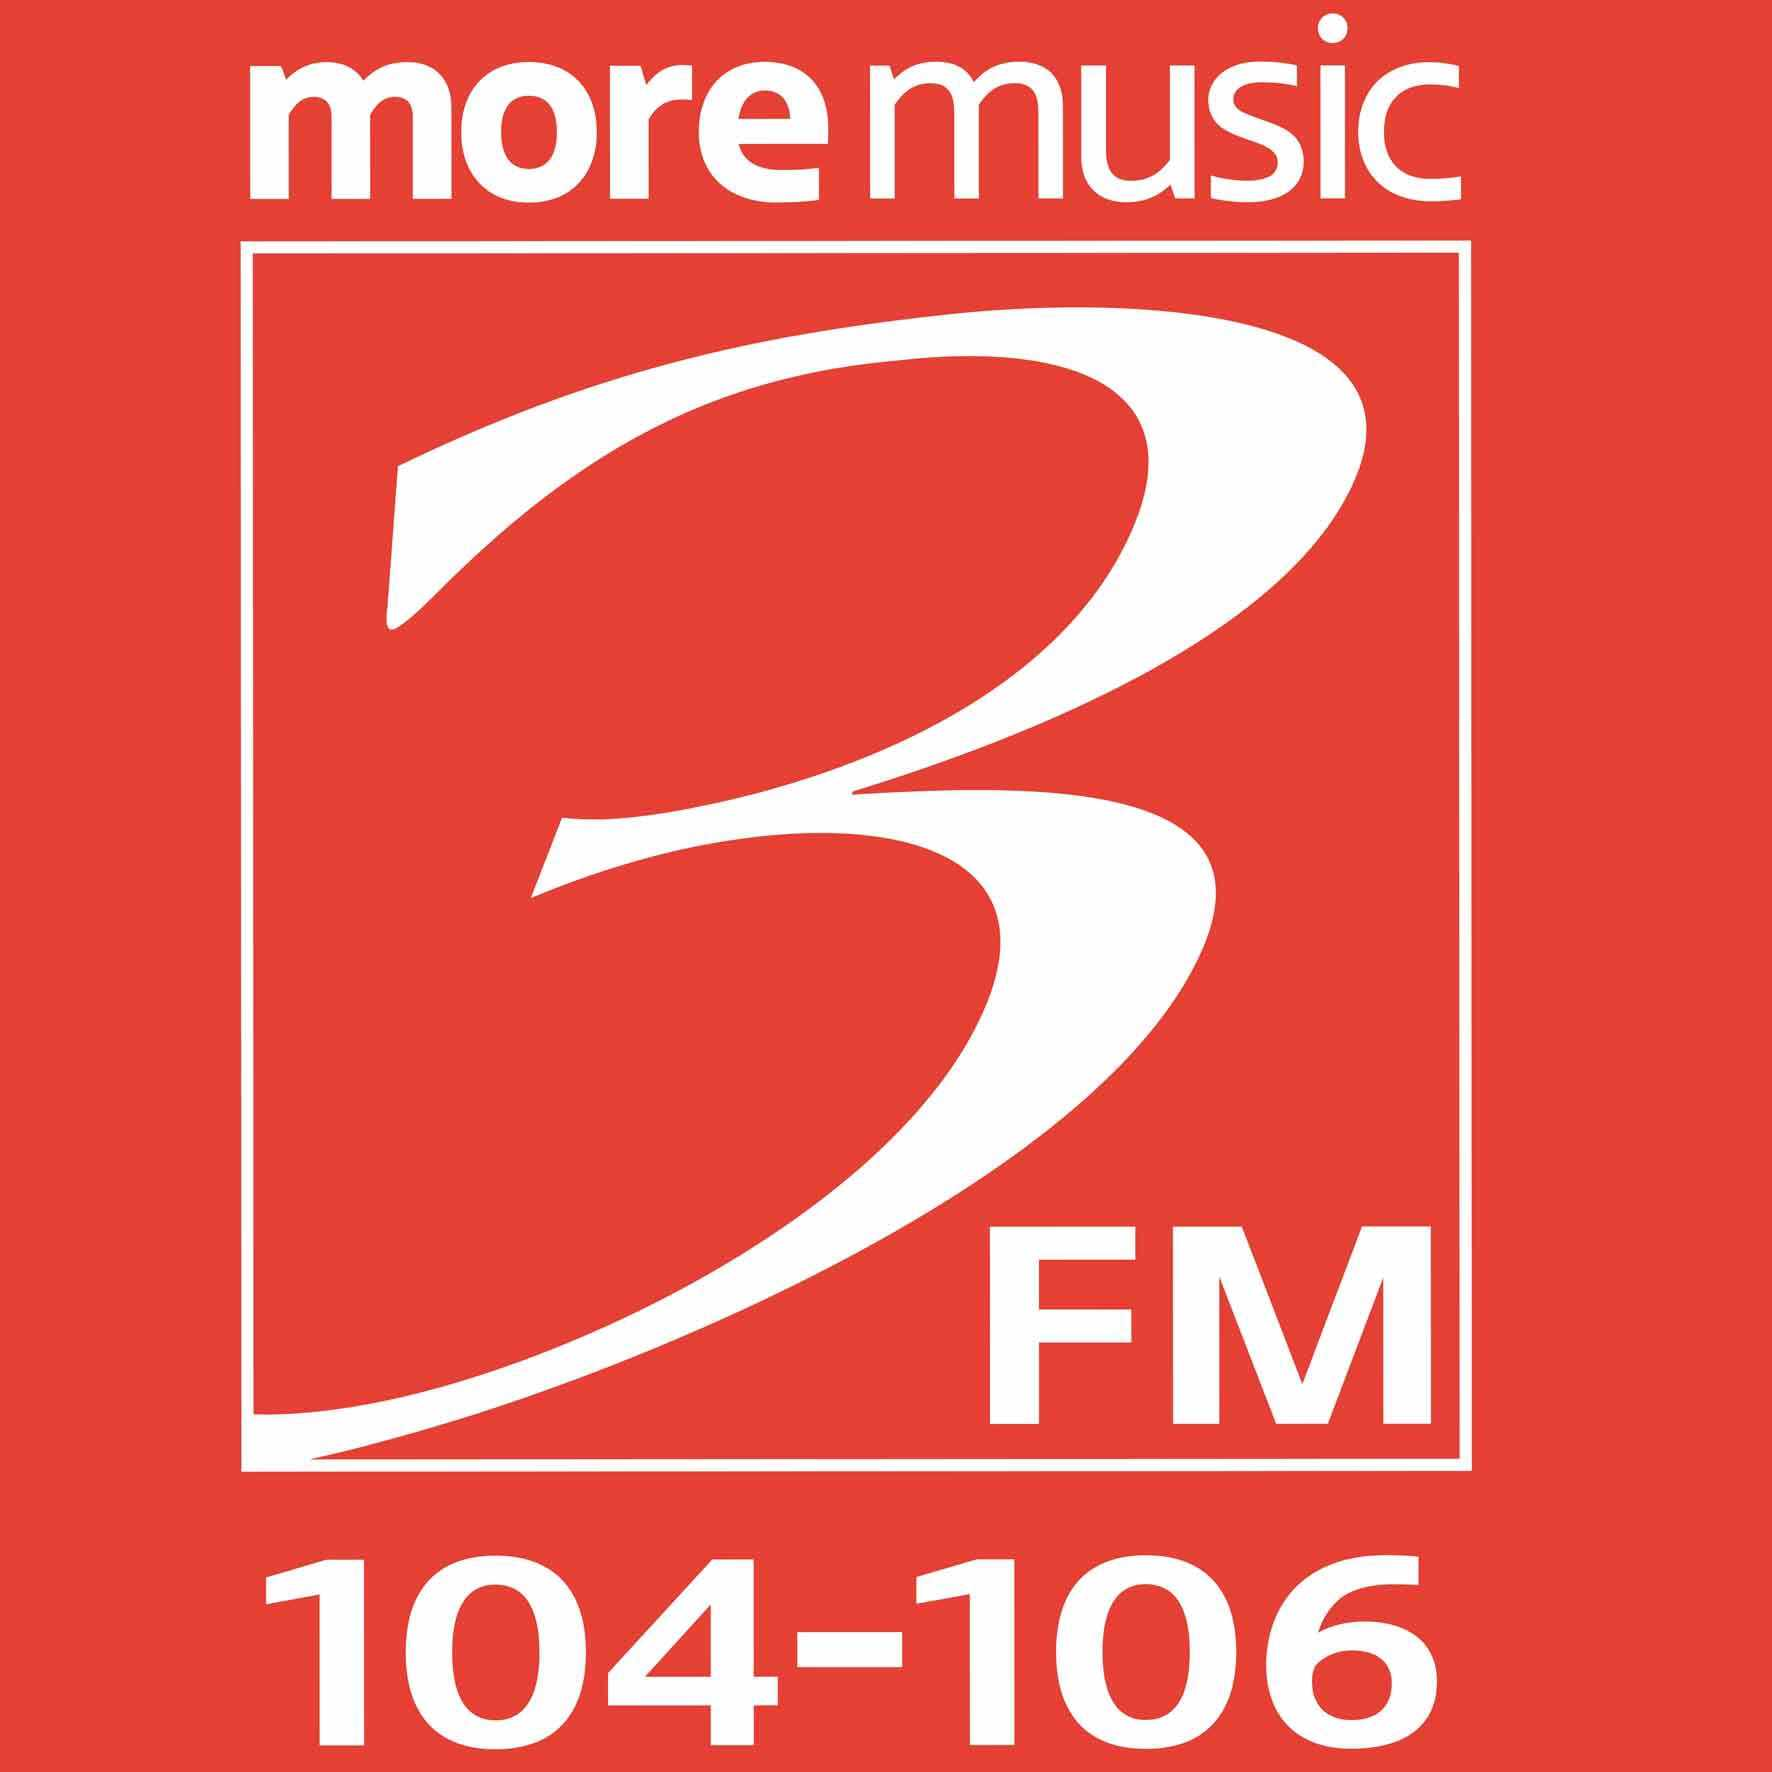 3FM Isle of Man - The #1 Music Station for the Isle of Man with more music, news and island info